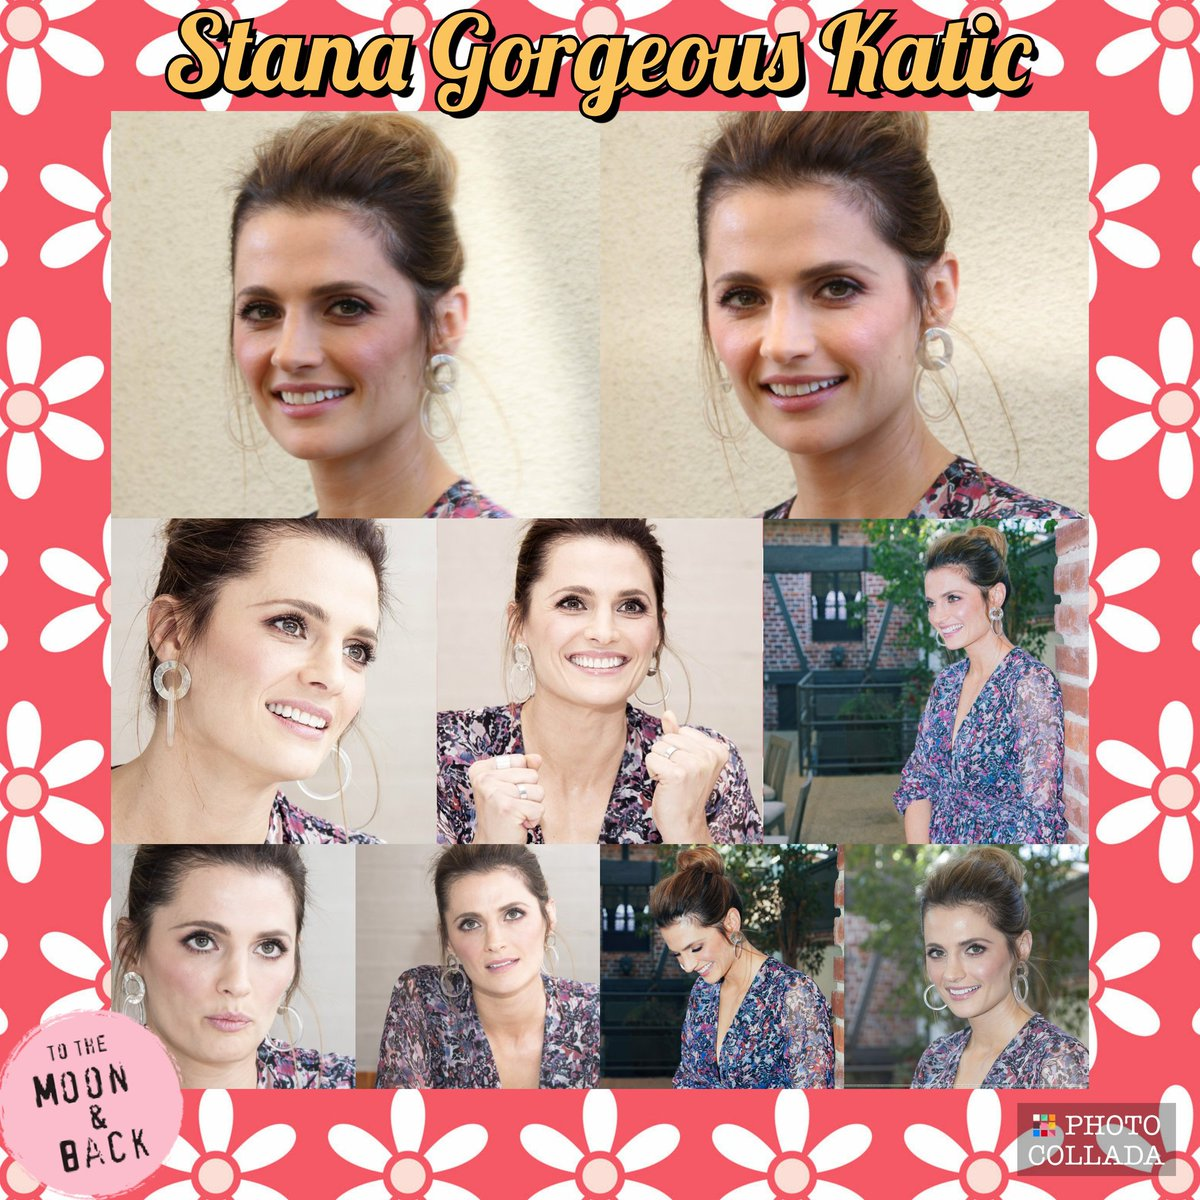 Good Morning Pia  Have a Wonderful Day &amp; Week  @Stana_Katic  Fans!  #StanaKatic  #EmilyByrne  #KateBeckett  #Absentia  #AbsentiaFam  #AbsentiaBestCast  #WeWantAbsentiaS2 #RenewAbsentia<br>http://pic.twitter.com/vQVkuxgi9S